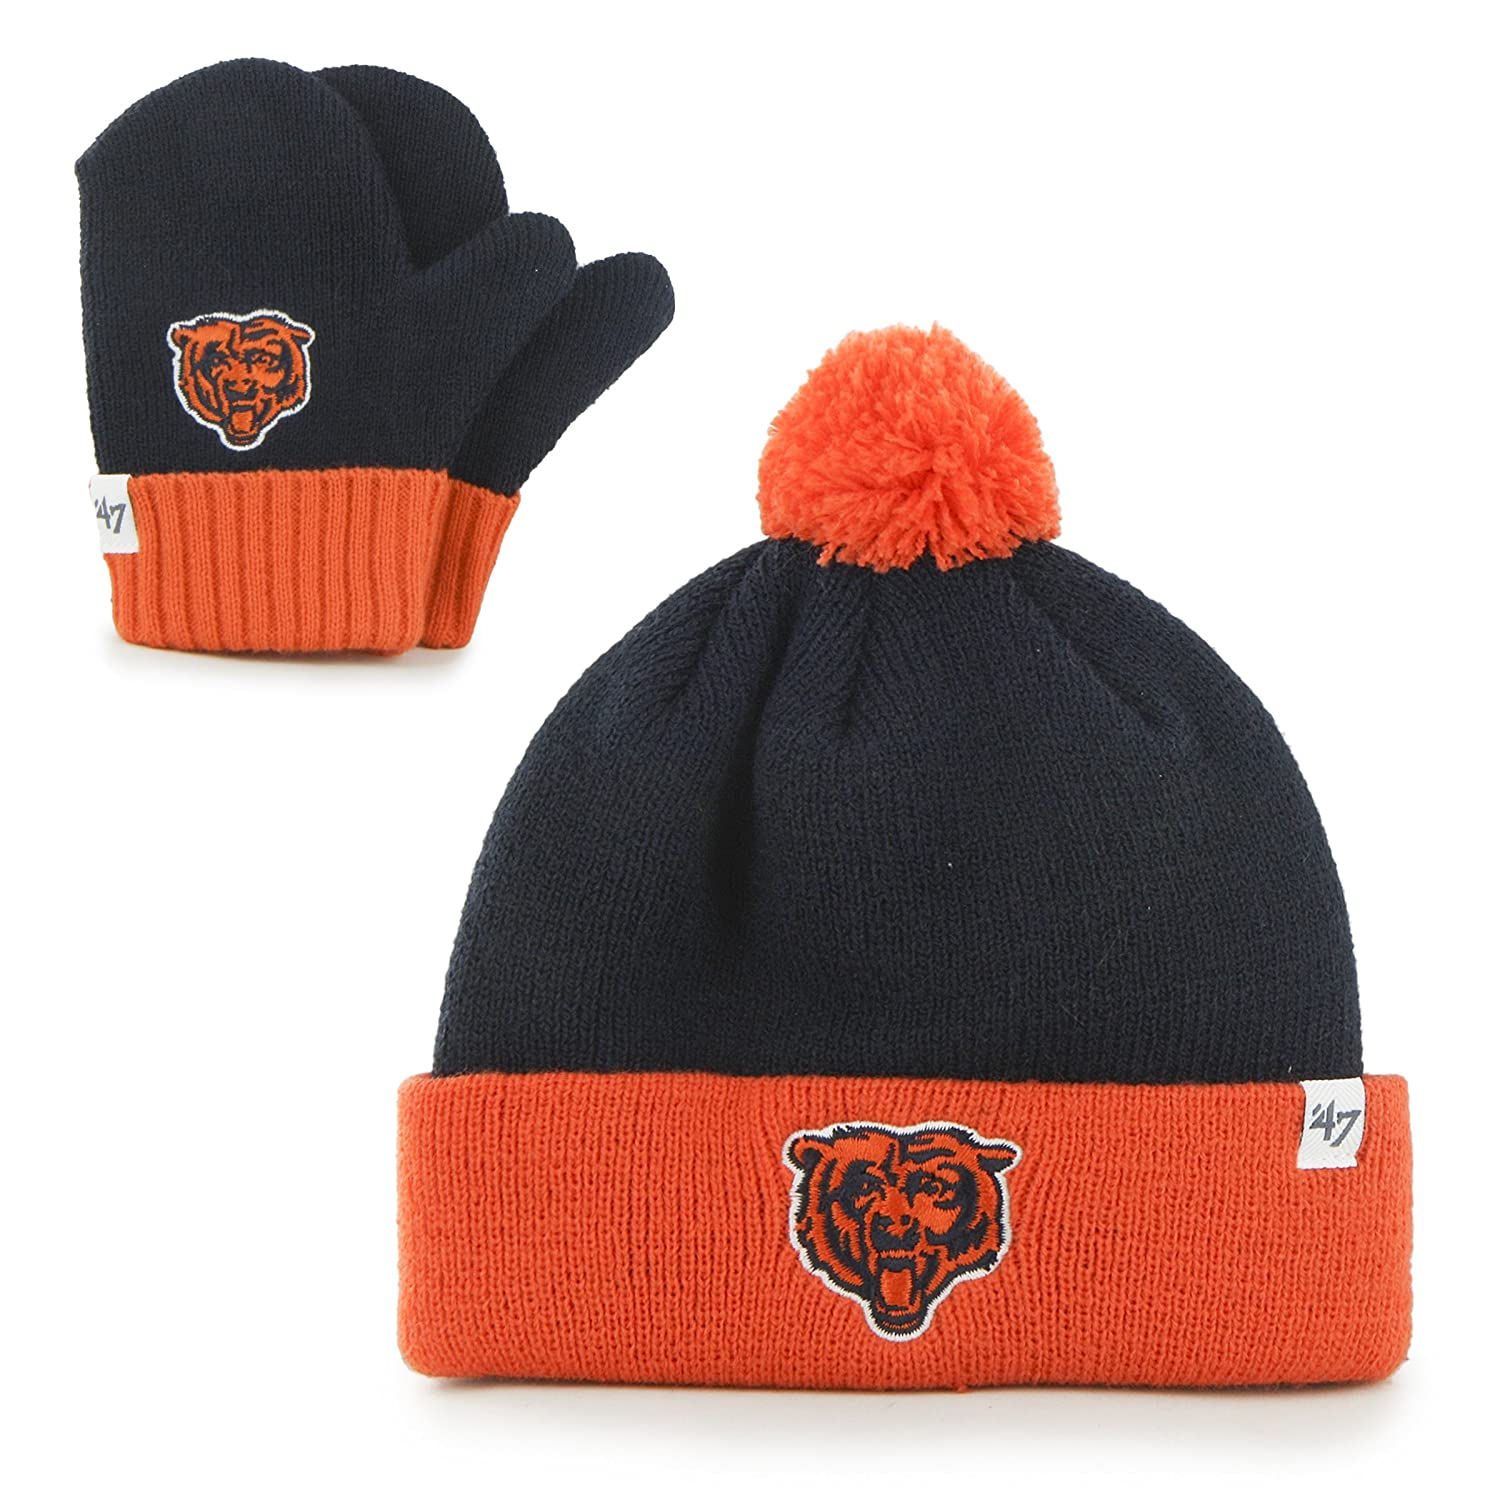 NFL Chicago Bears Toddler  47 Brand Bam Bam Cuff Knit Pom Hat and Mittens  Set 0c9546652e57